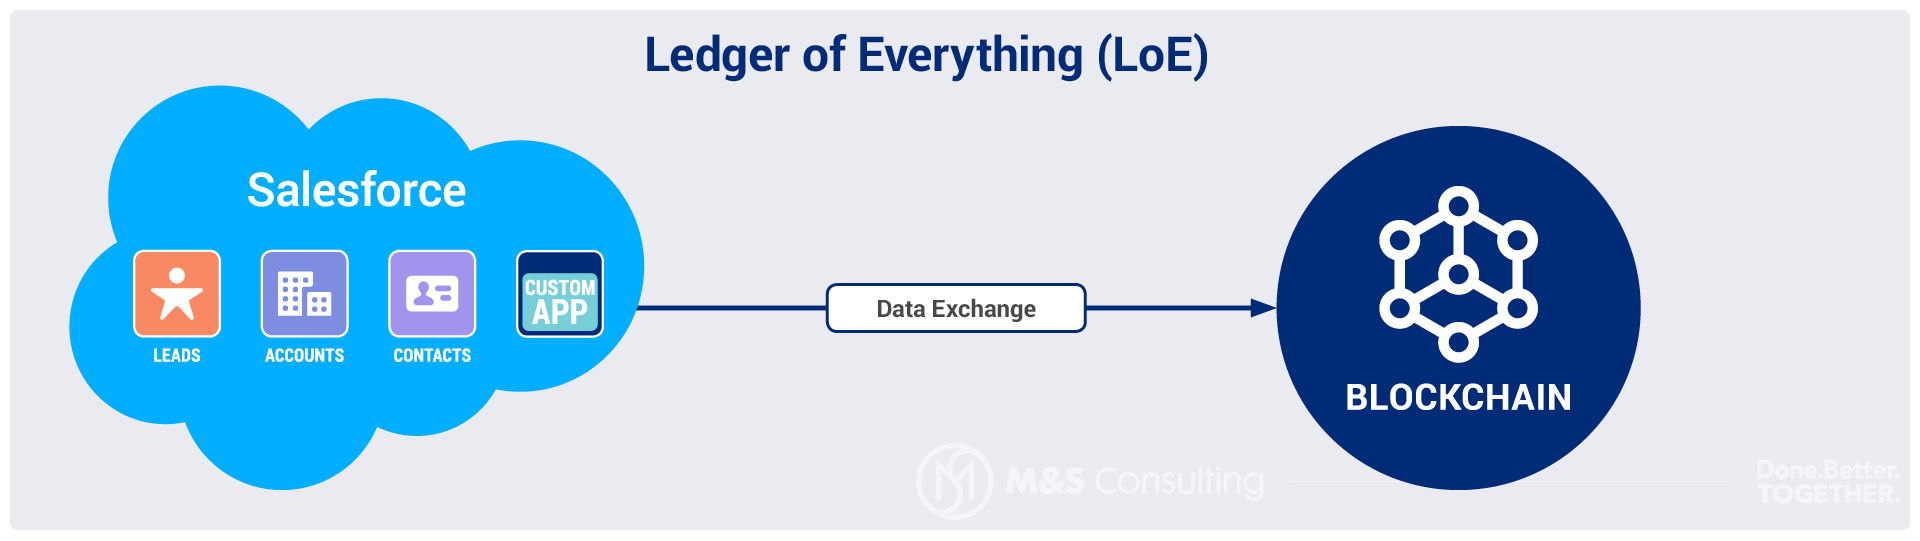 Ledger of Everything, Blockchain, Salesforce